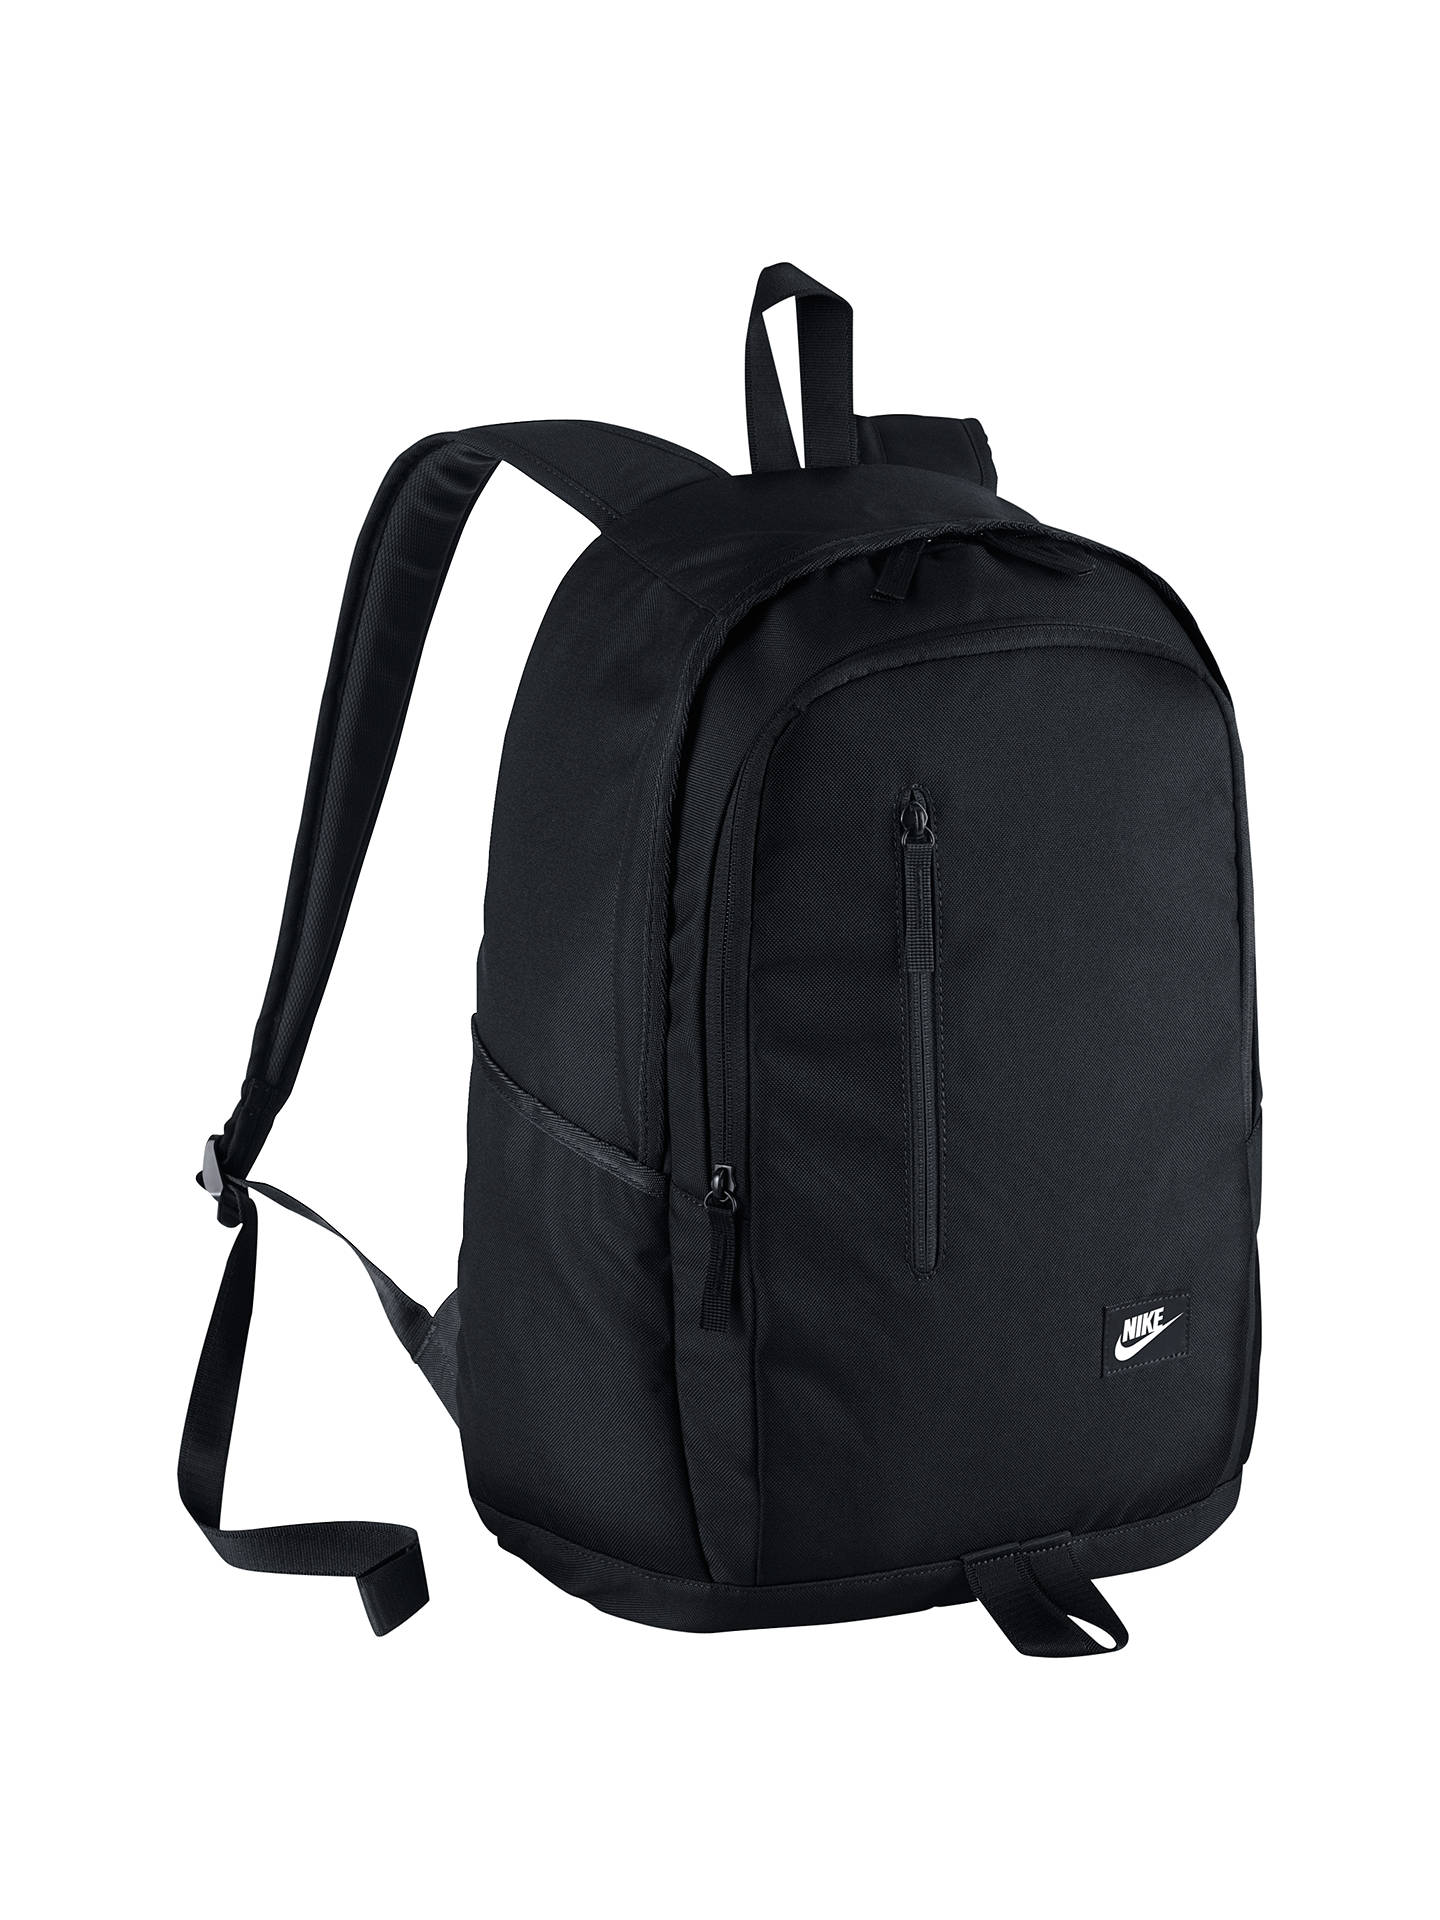 bb124610402f Nike Laptop Backpack Canada- Fenix Toulouse Handball